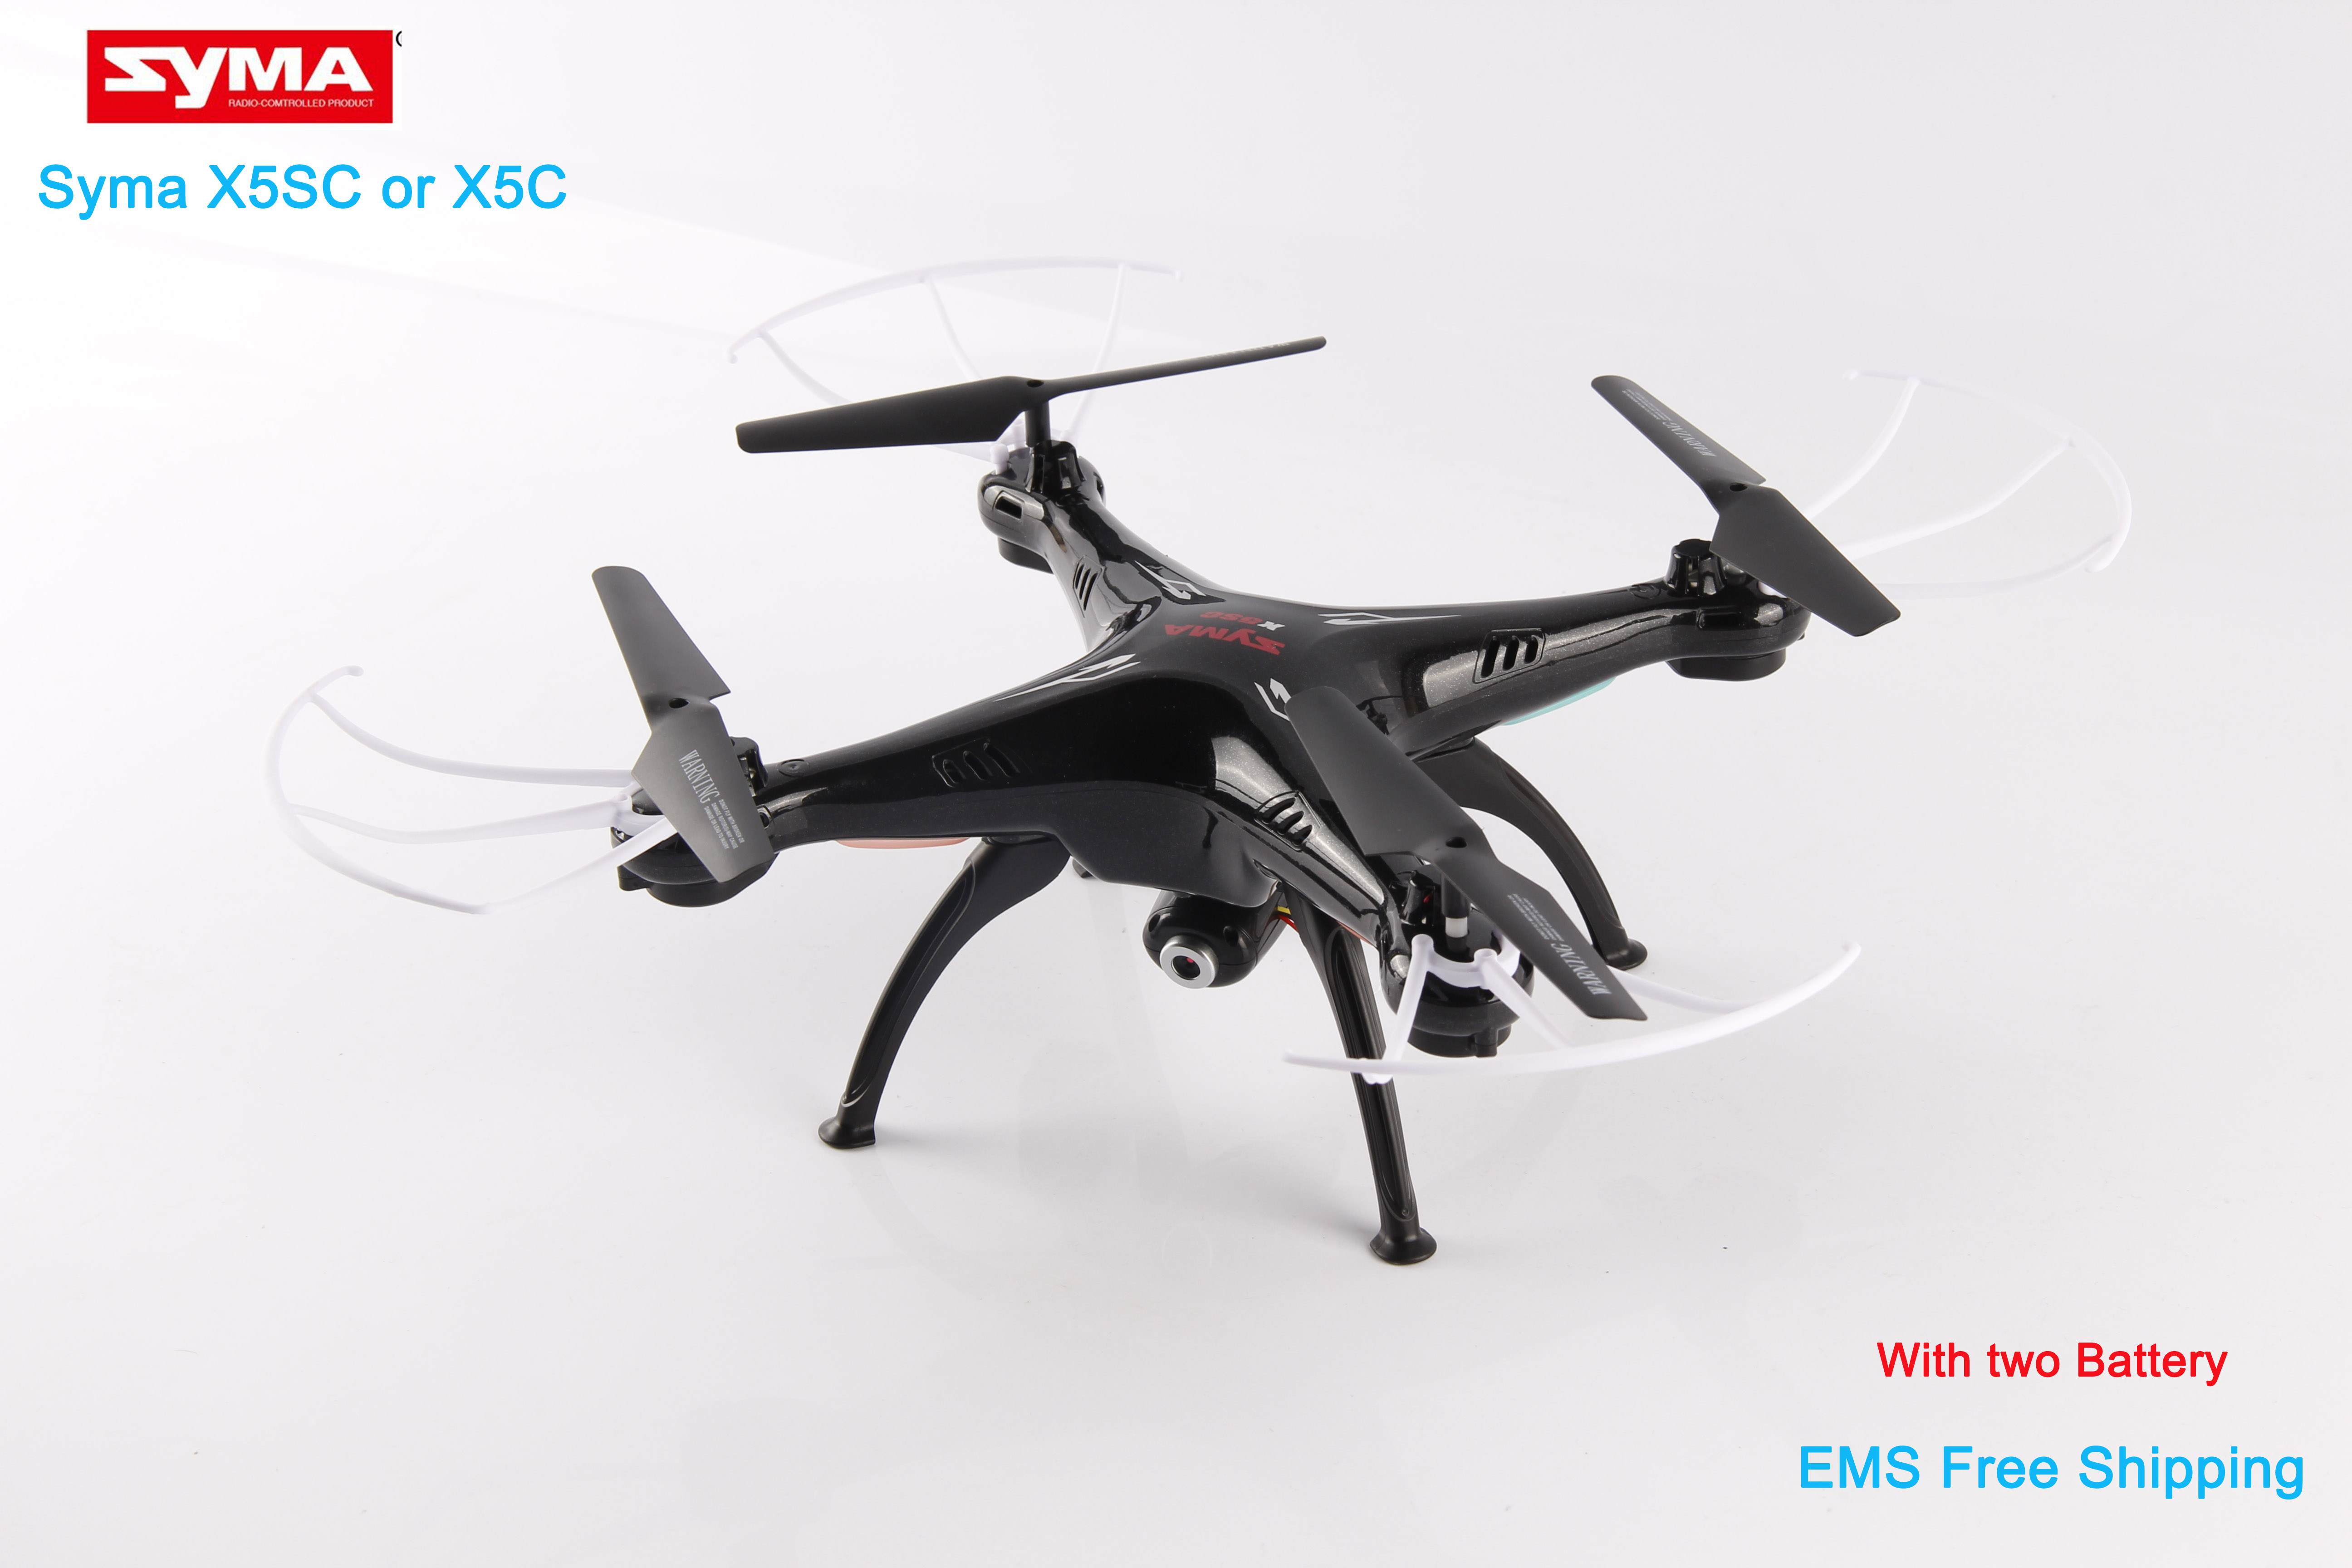 where to buy remote control helicopter with 32662556022 on Wl Toys Helicopter With Camera in addition Elephant Foot 204343661 furthermore Watch together with 1432482647 as well Flying Camera Helicopter.